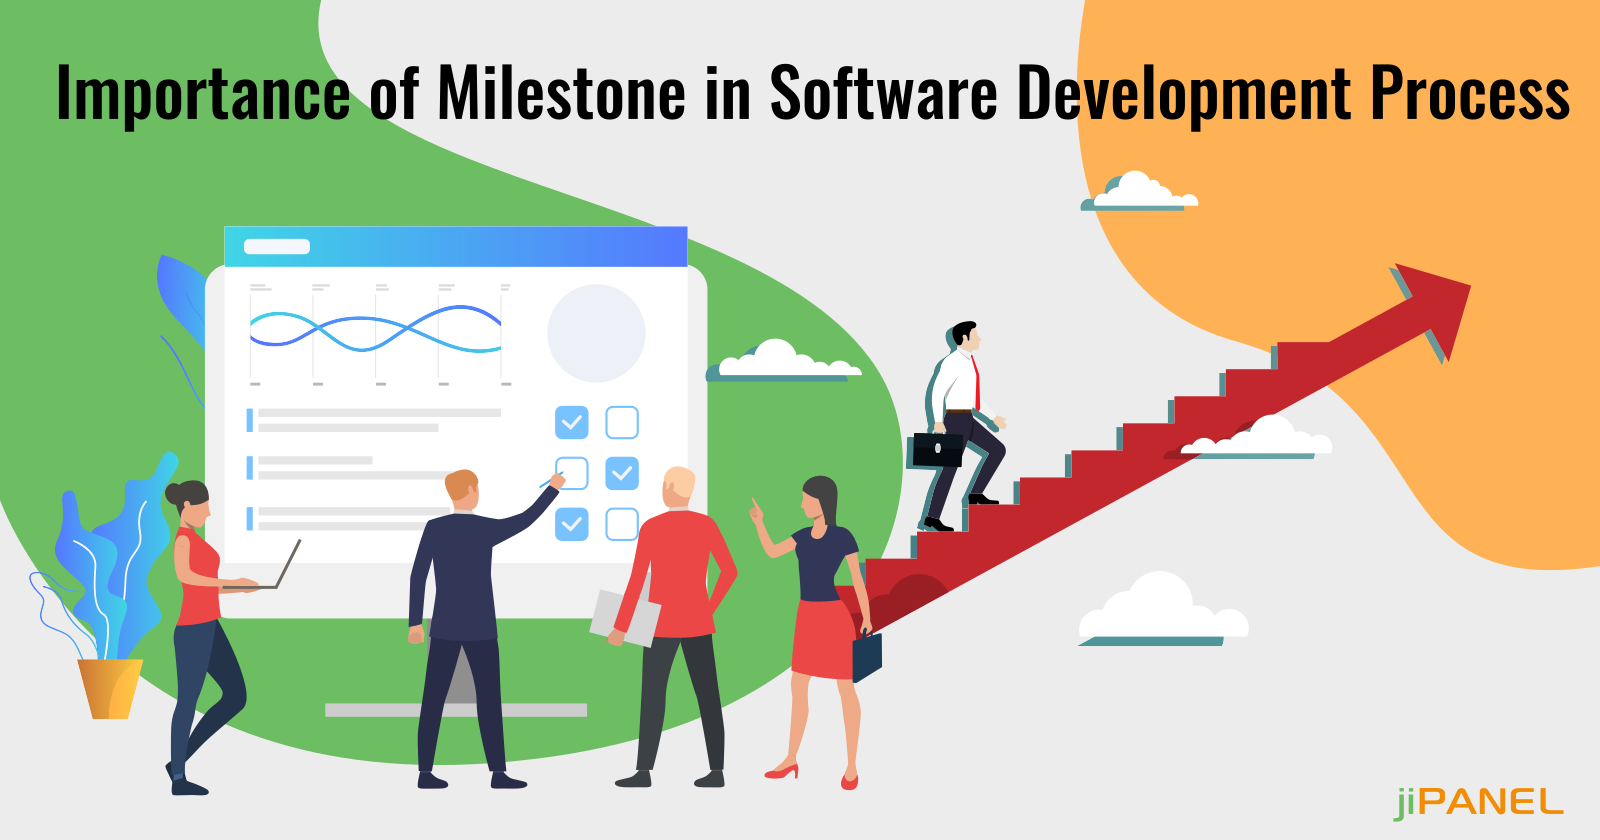 Importance of Milestone in Software Development Process